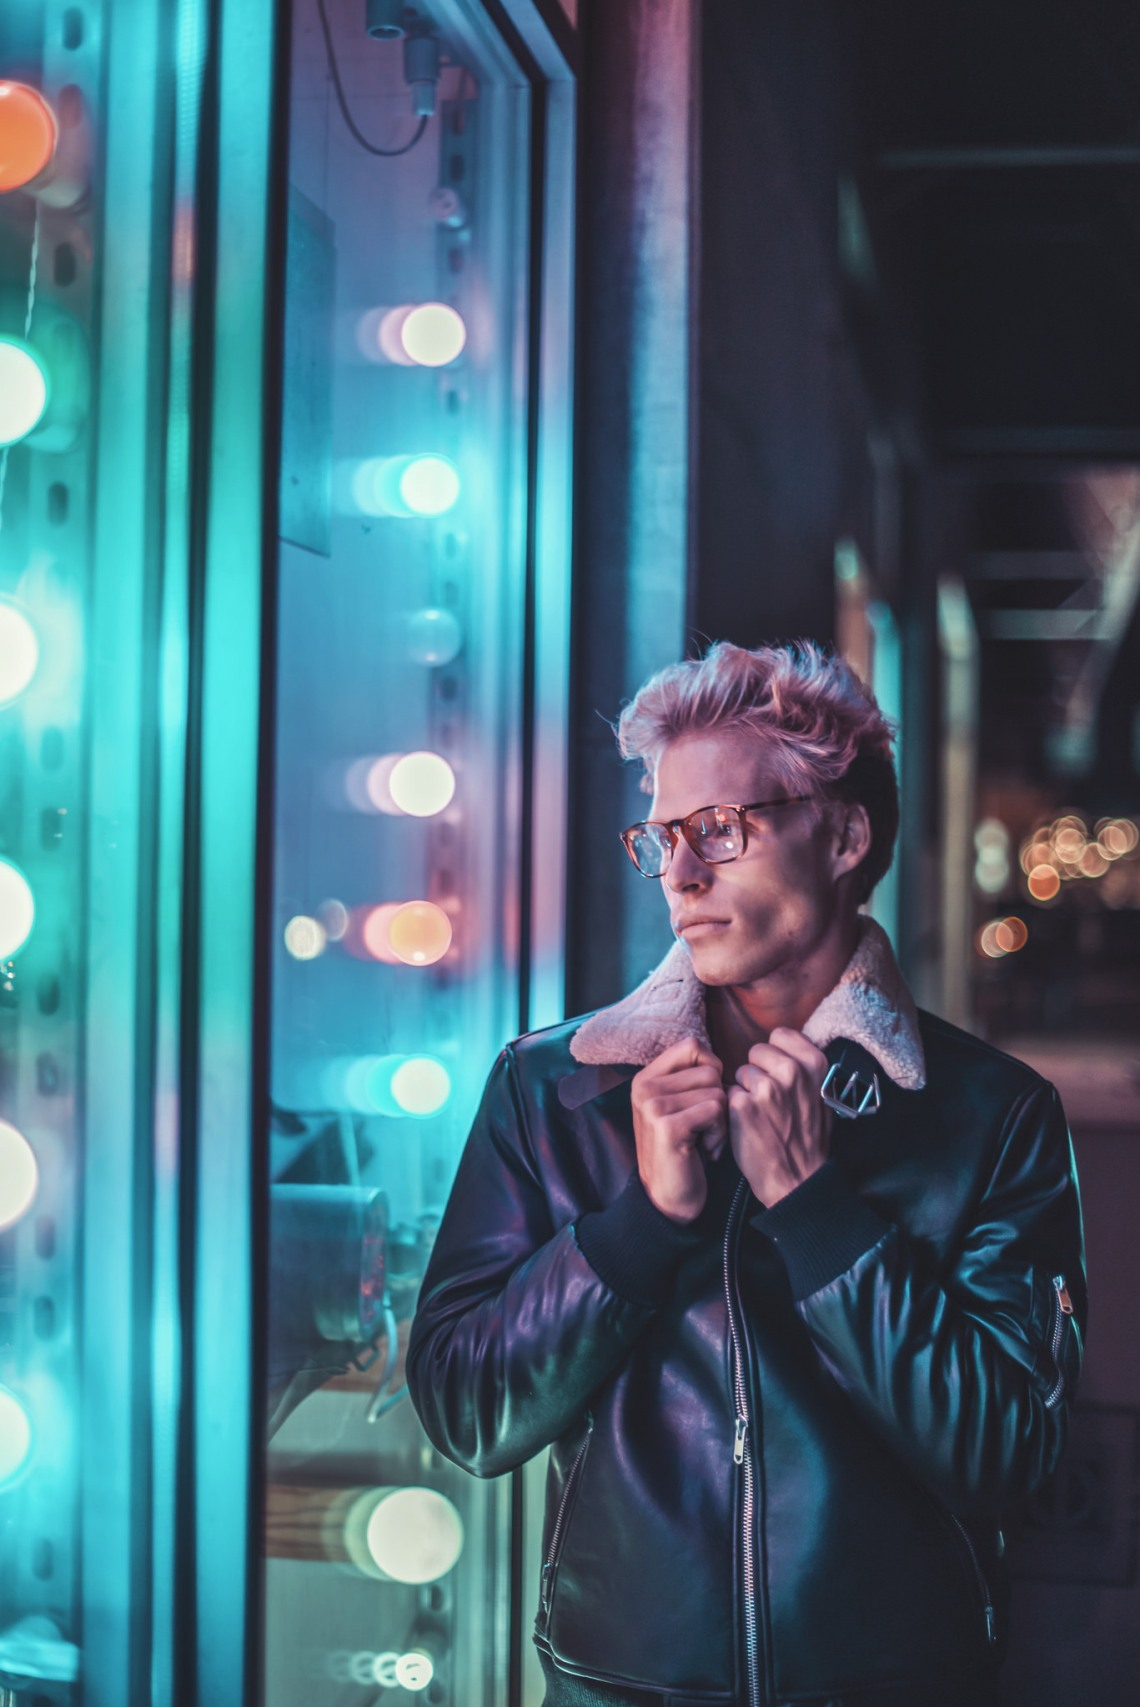 young man look into a window blue and pink lighting